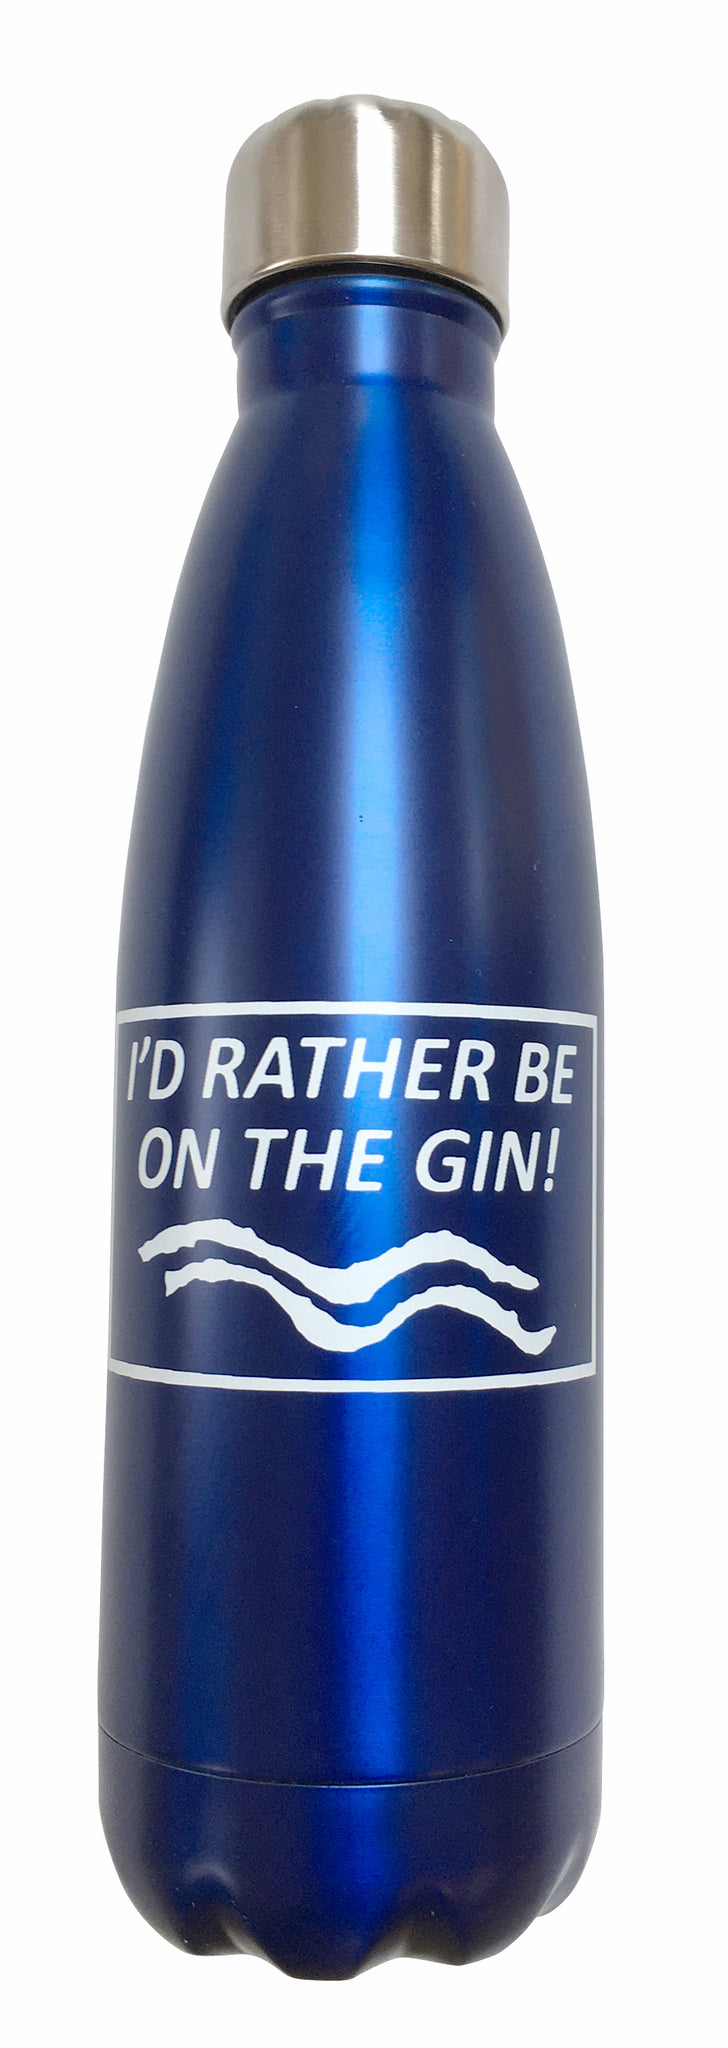 I'd Rather Be On The Gin